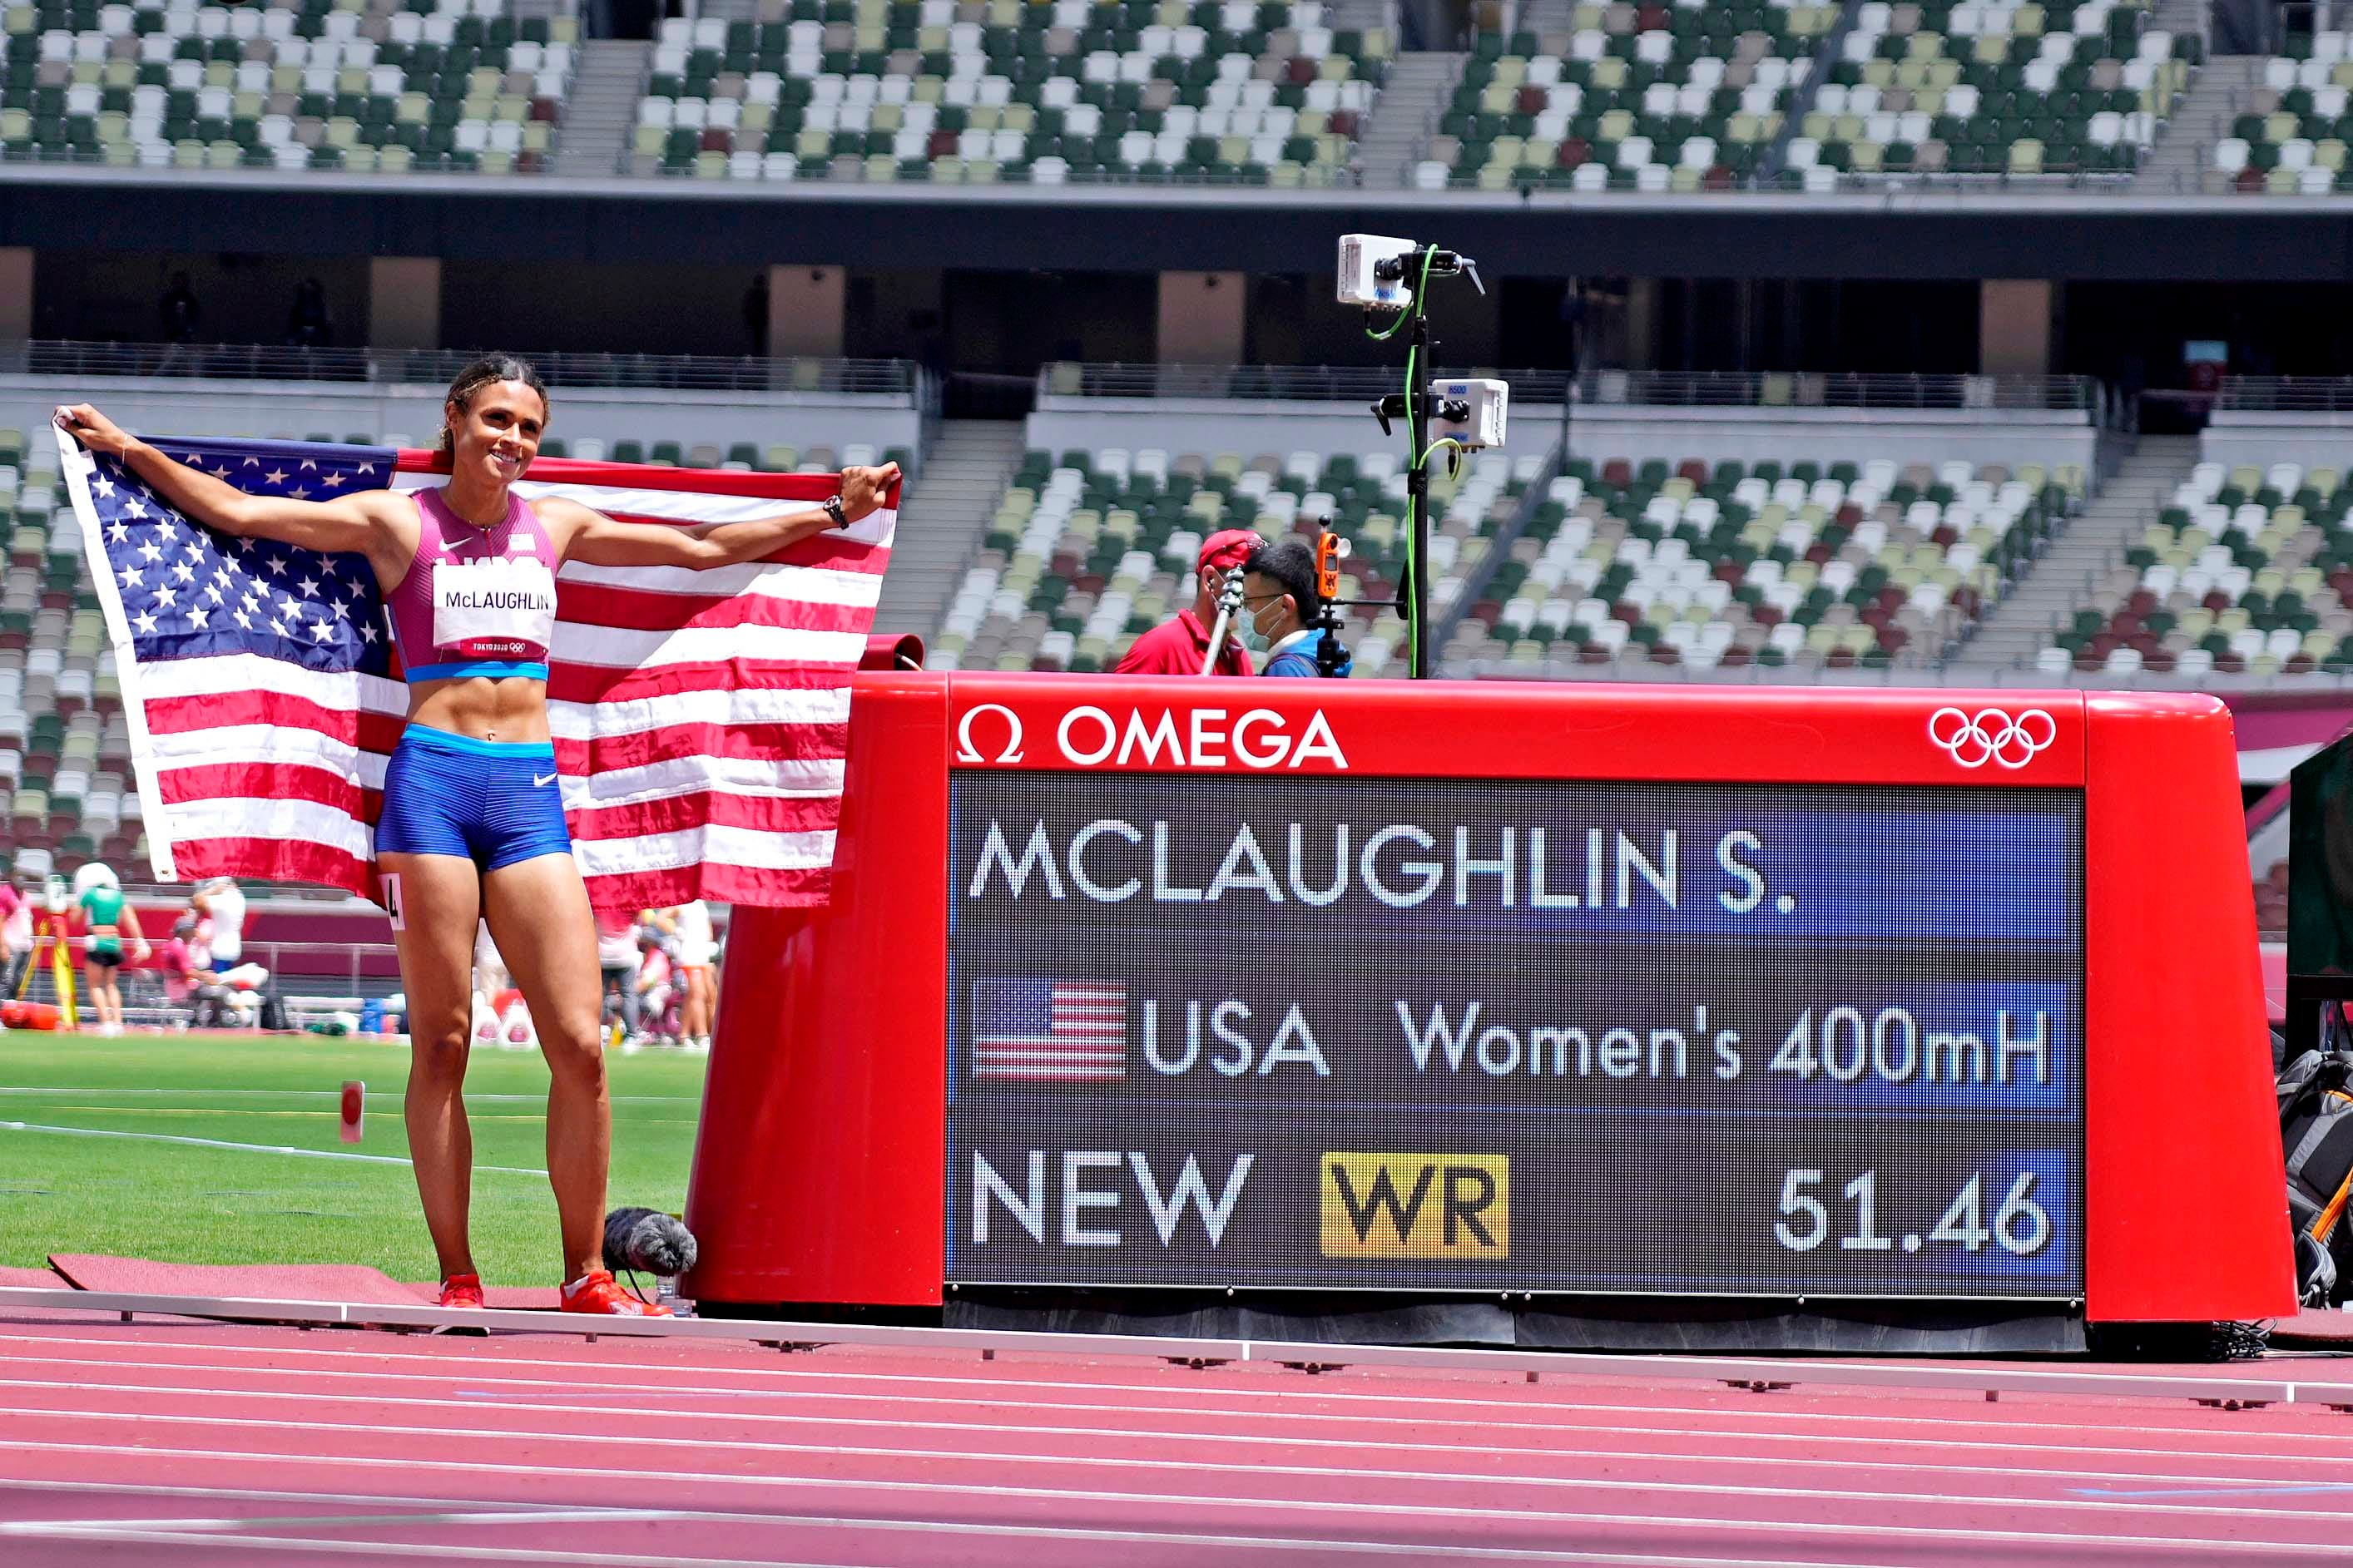 Chasing Gold: Americans win gold and silver in 400 hurdles; trio of sports reach semifinals